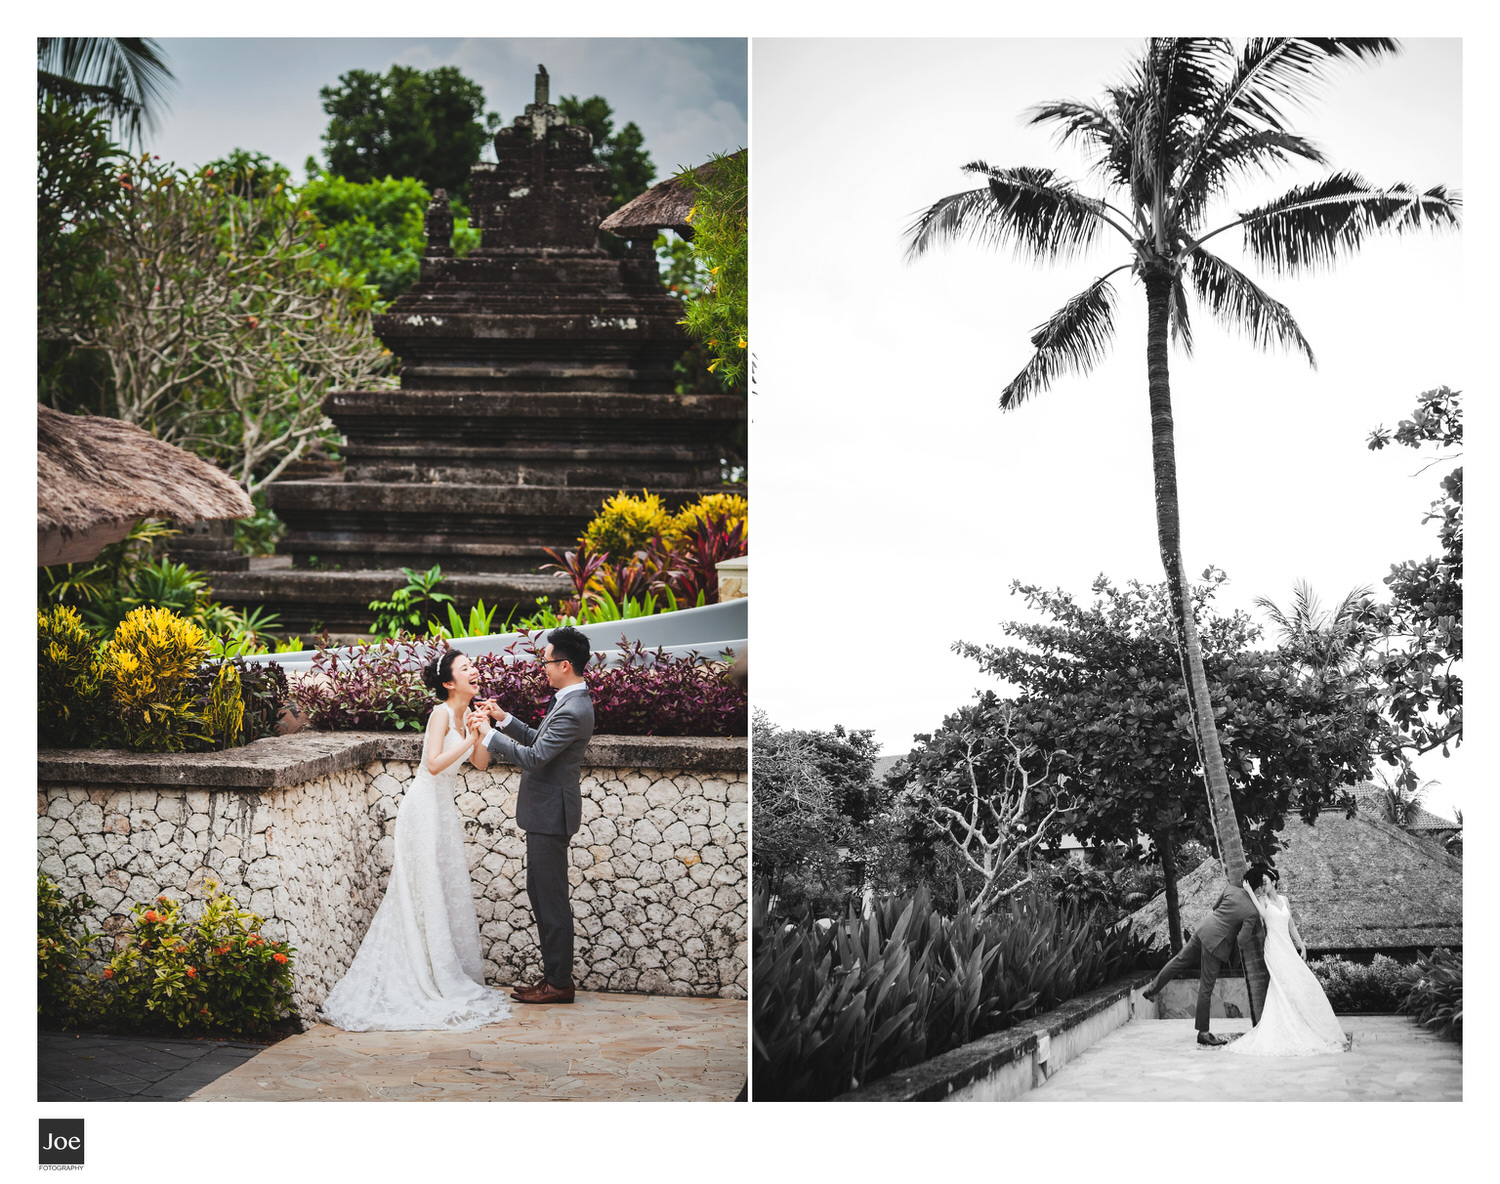 joe-fotography-bali-wedding-ayana-resort-janie-sean-62.jpg